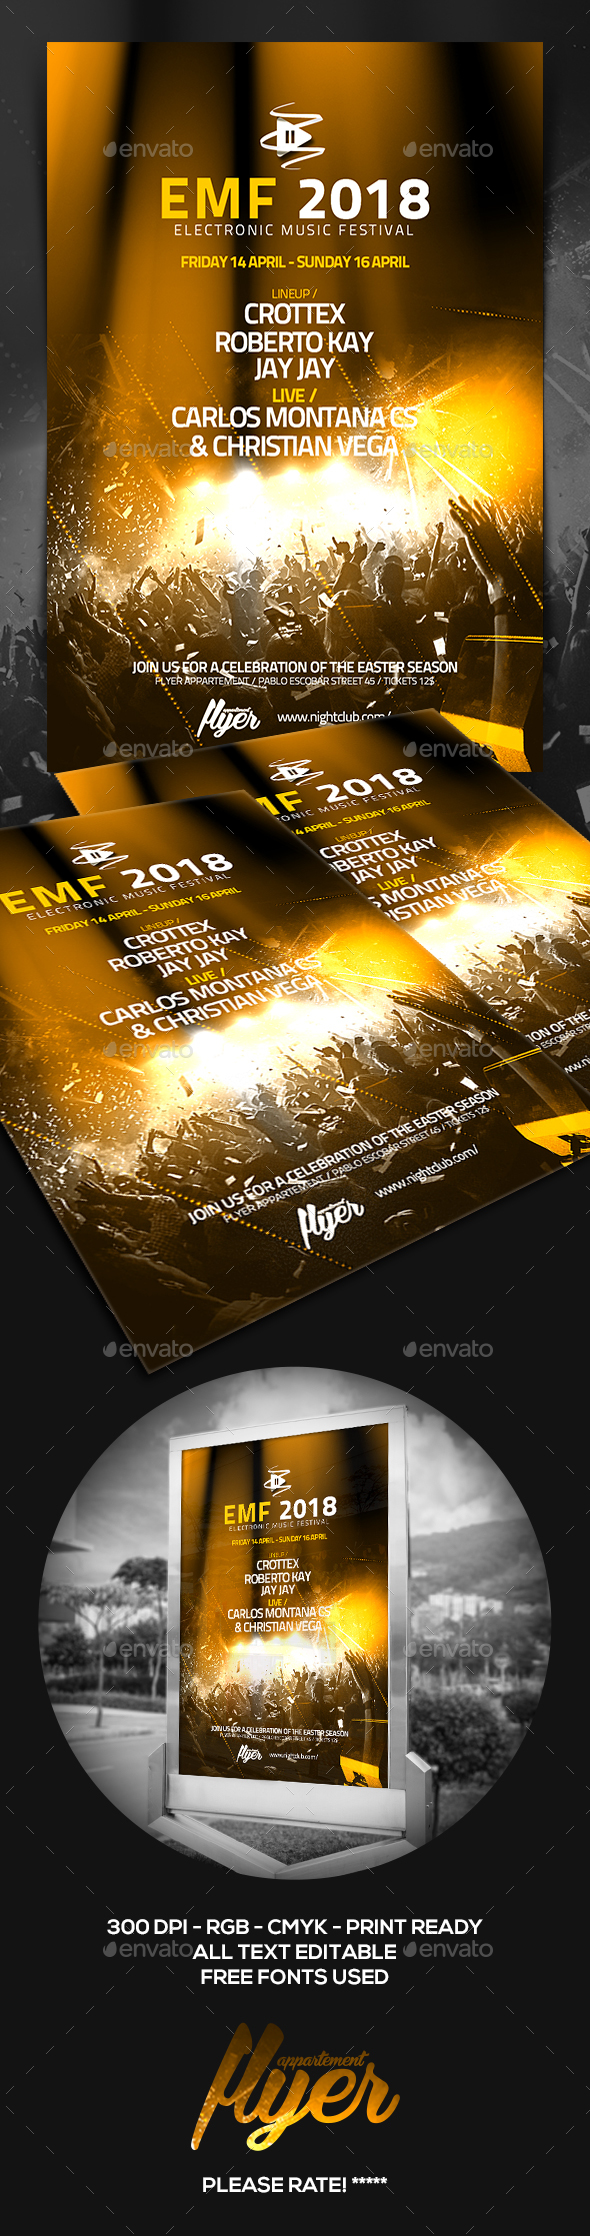 Electronic Music Festival Flyer - Clubs & Parties Events